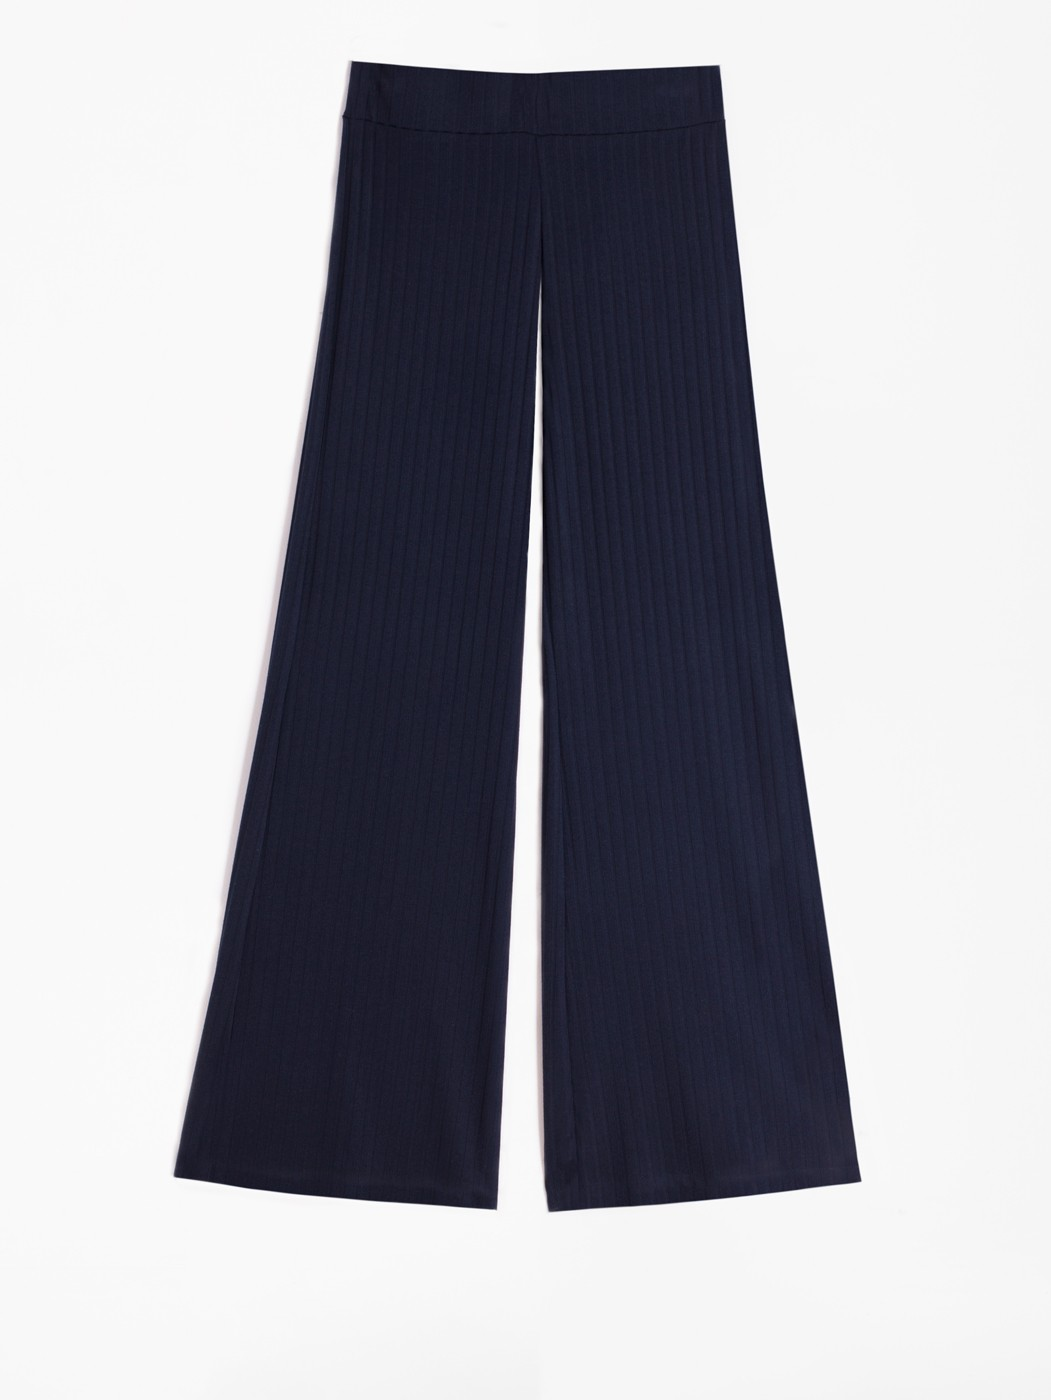 VENUS TROUSERS NAVY CANALE